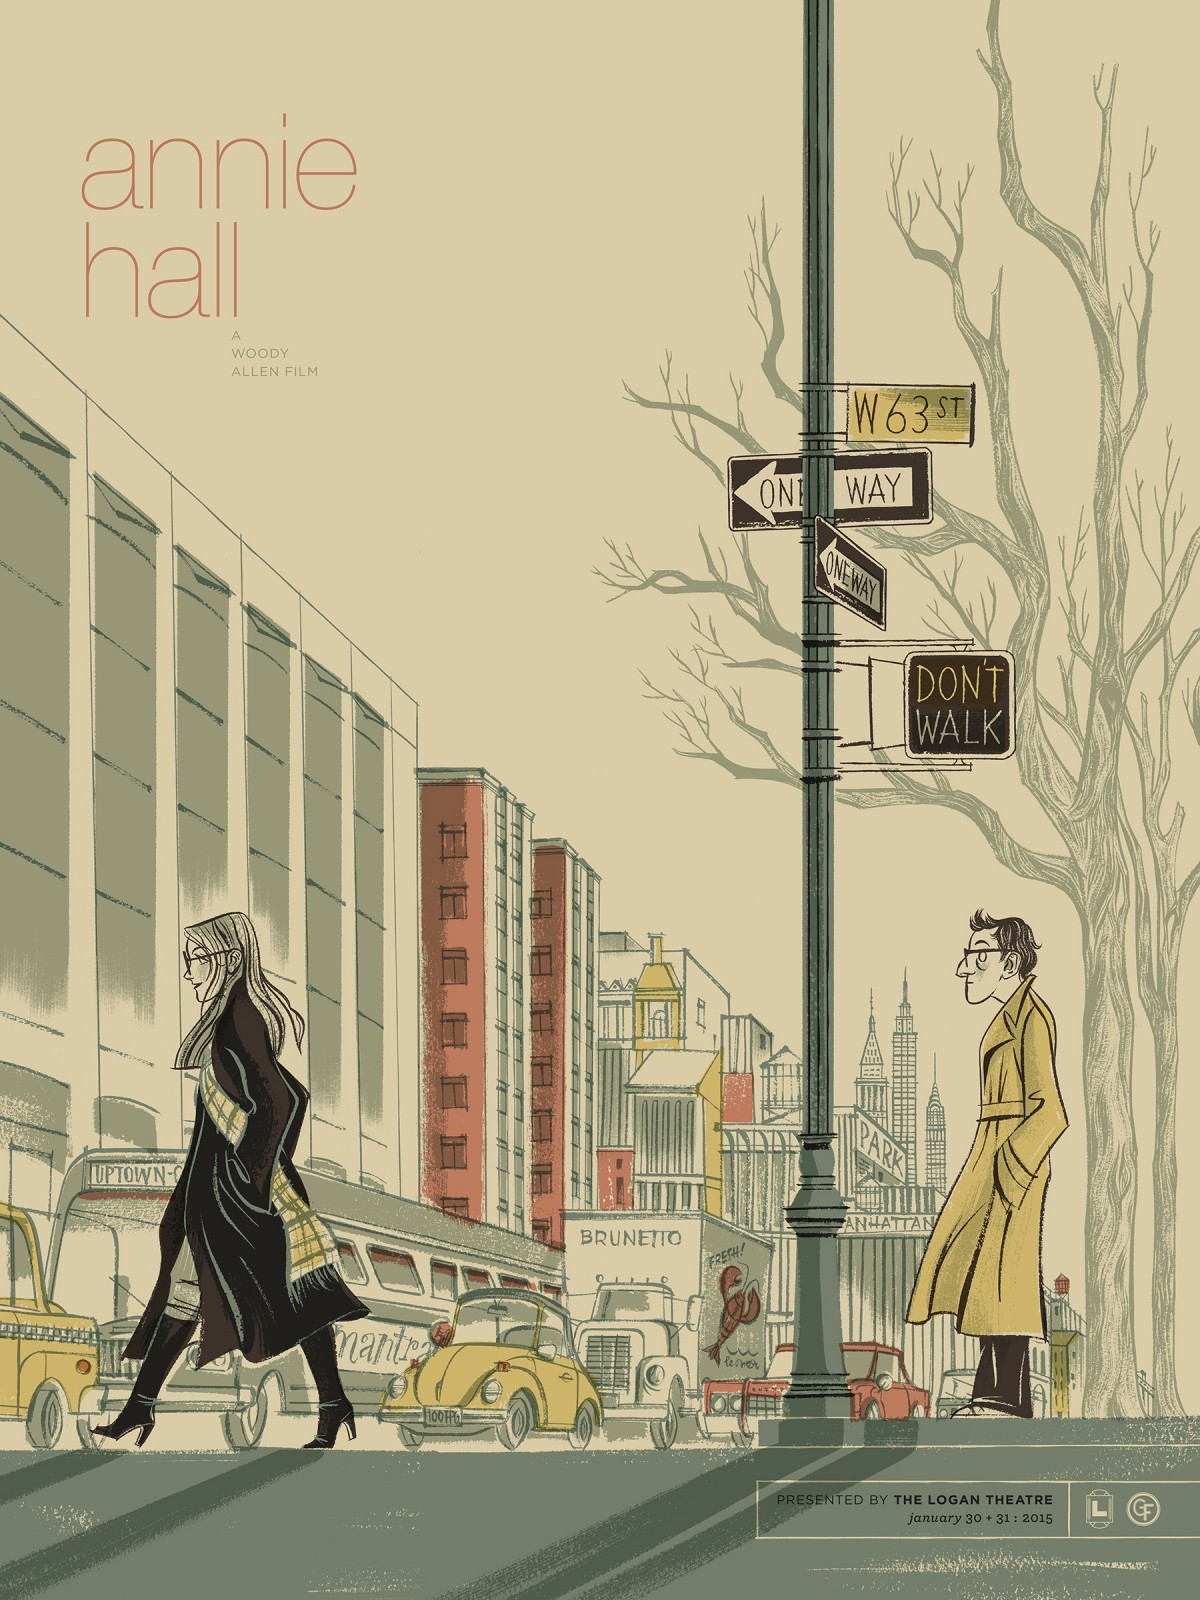 Annie Hall (1977) - Directed by: Woody AllenStarring: Woody Allen, Diane Keaton, Tony Roberts, Shelley Duvall, Christopher WalkenRated: PGRunning Time: 1 h 33 mTMM Score: 4.5 stars out of 5STRENGTHS: Writing, Directing, Acting, InfluenceWEAKNESSES: Some Outdated Sexual Ideas, Some Gags Go On A Little Too Long